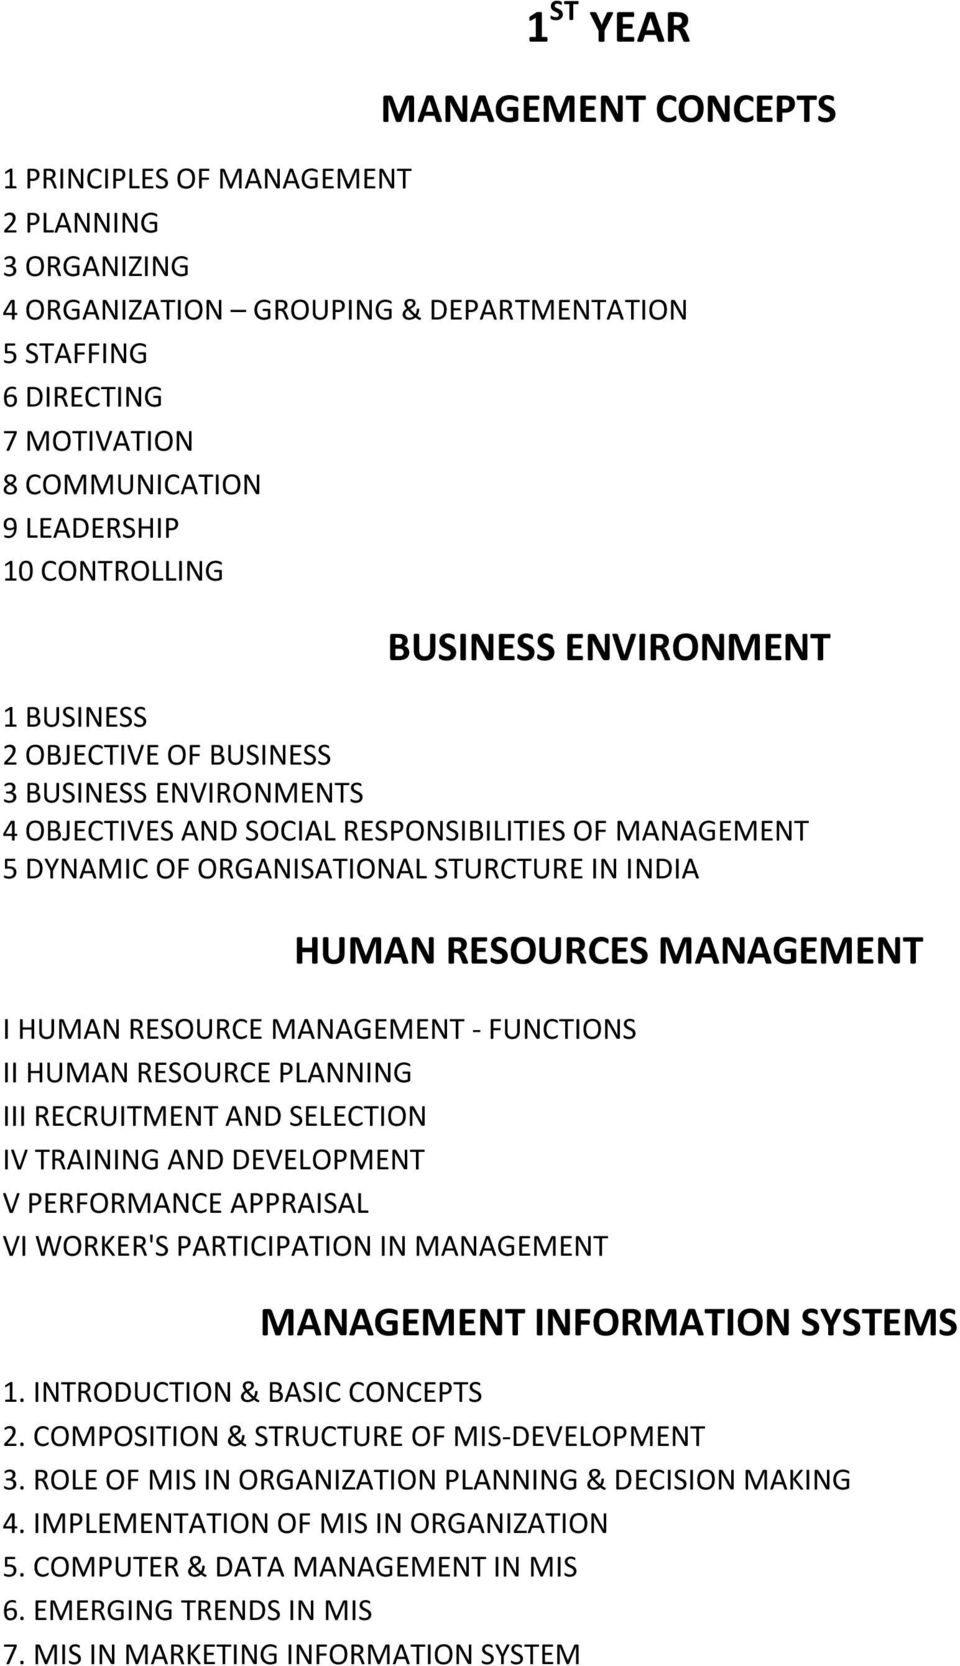 the role of human resource information system in recruitment This paper addresses the health care system from a global perspective and the importance of human resources management (hrm) in improving overall patient health outcomes and delivery of health care services.